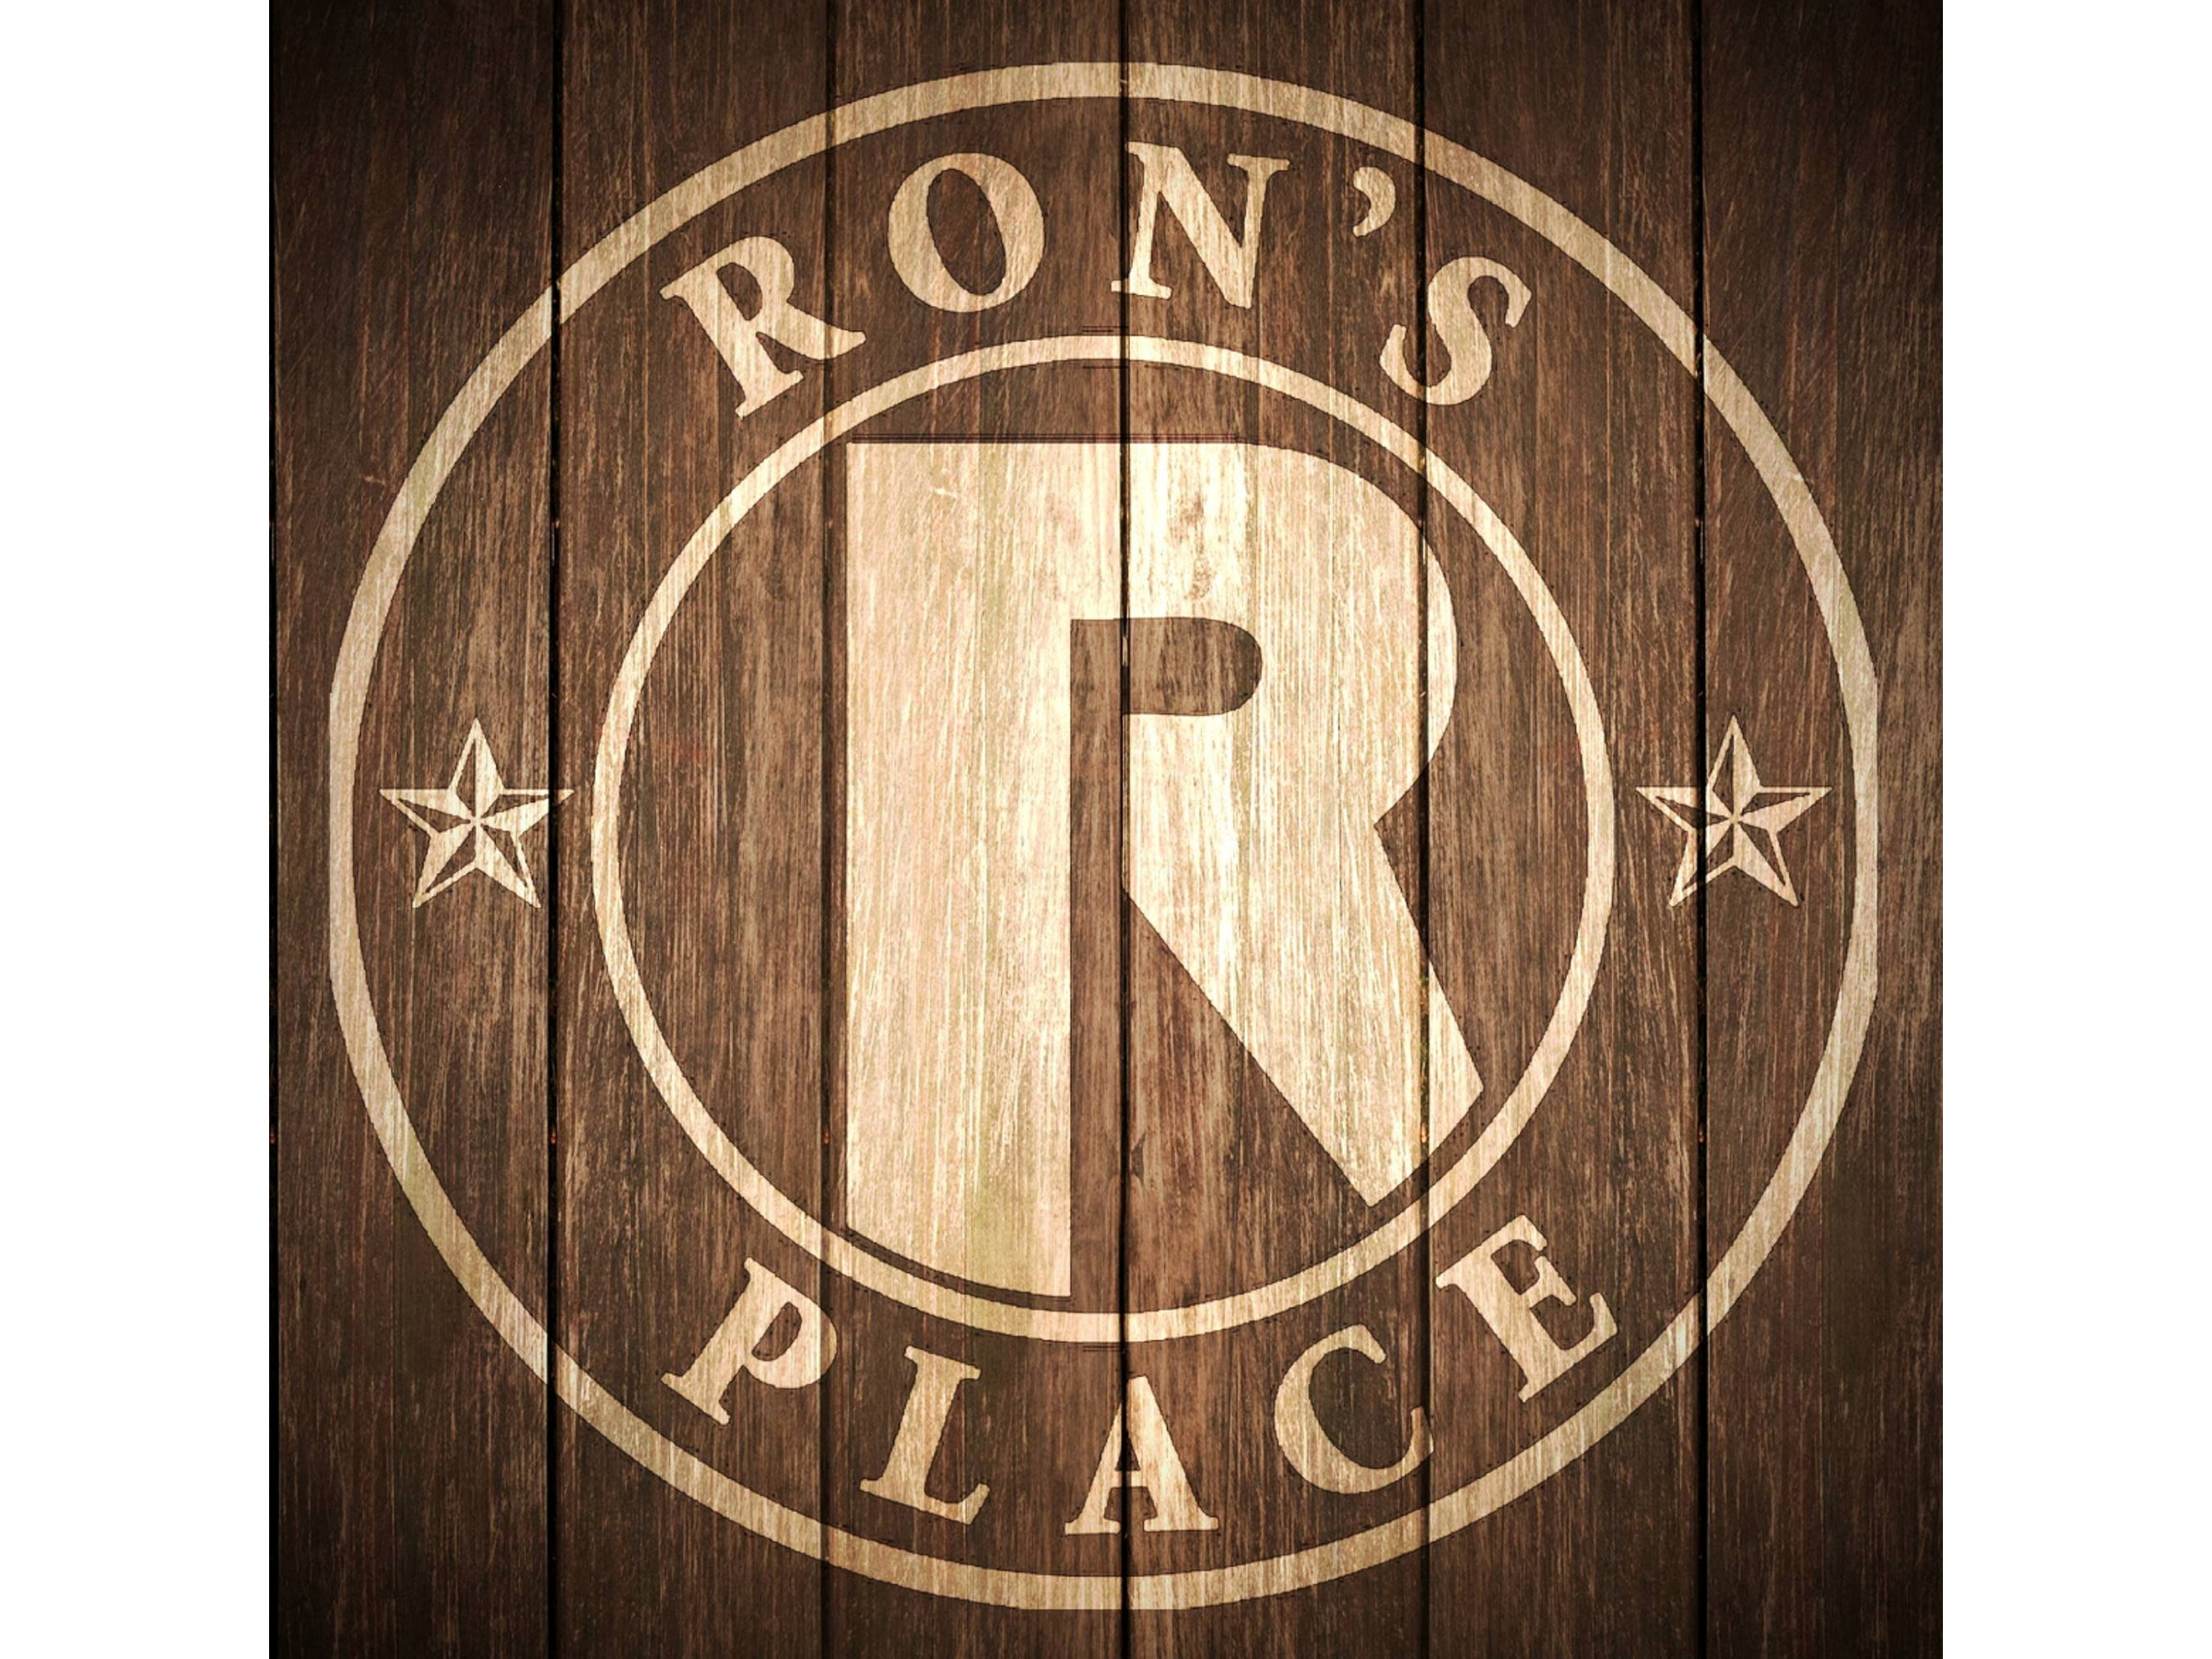 Ron's Place in Beyond Dallas